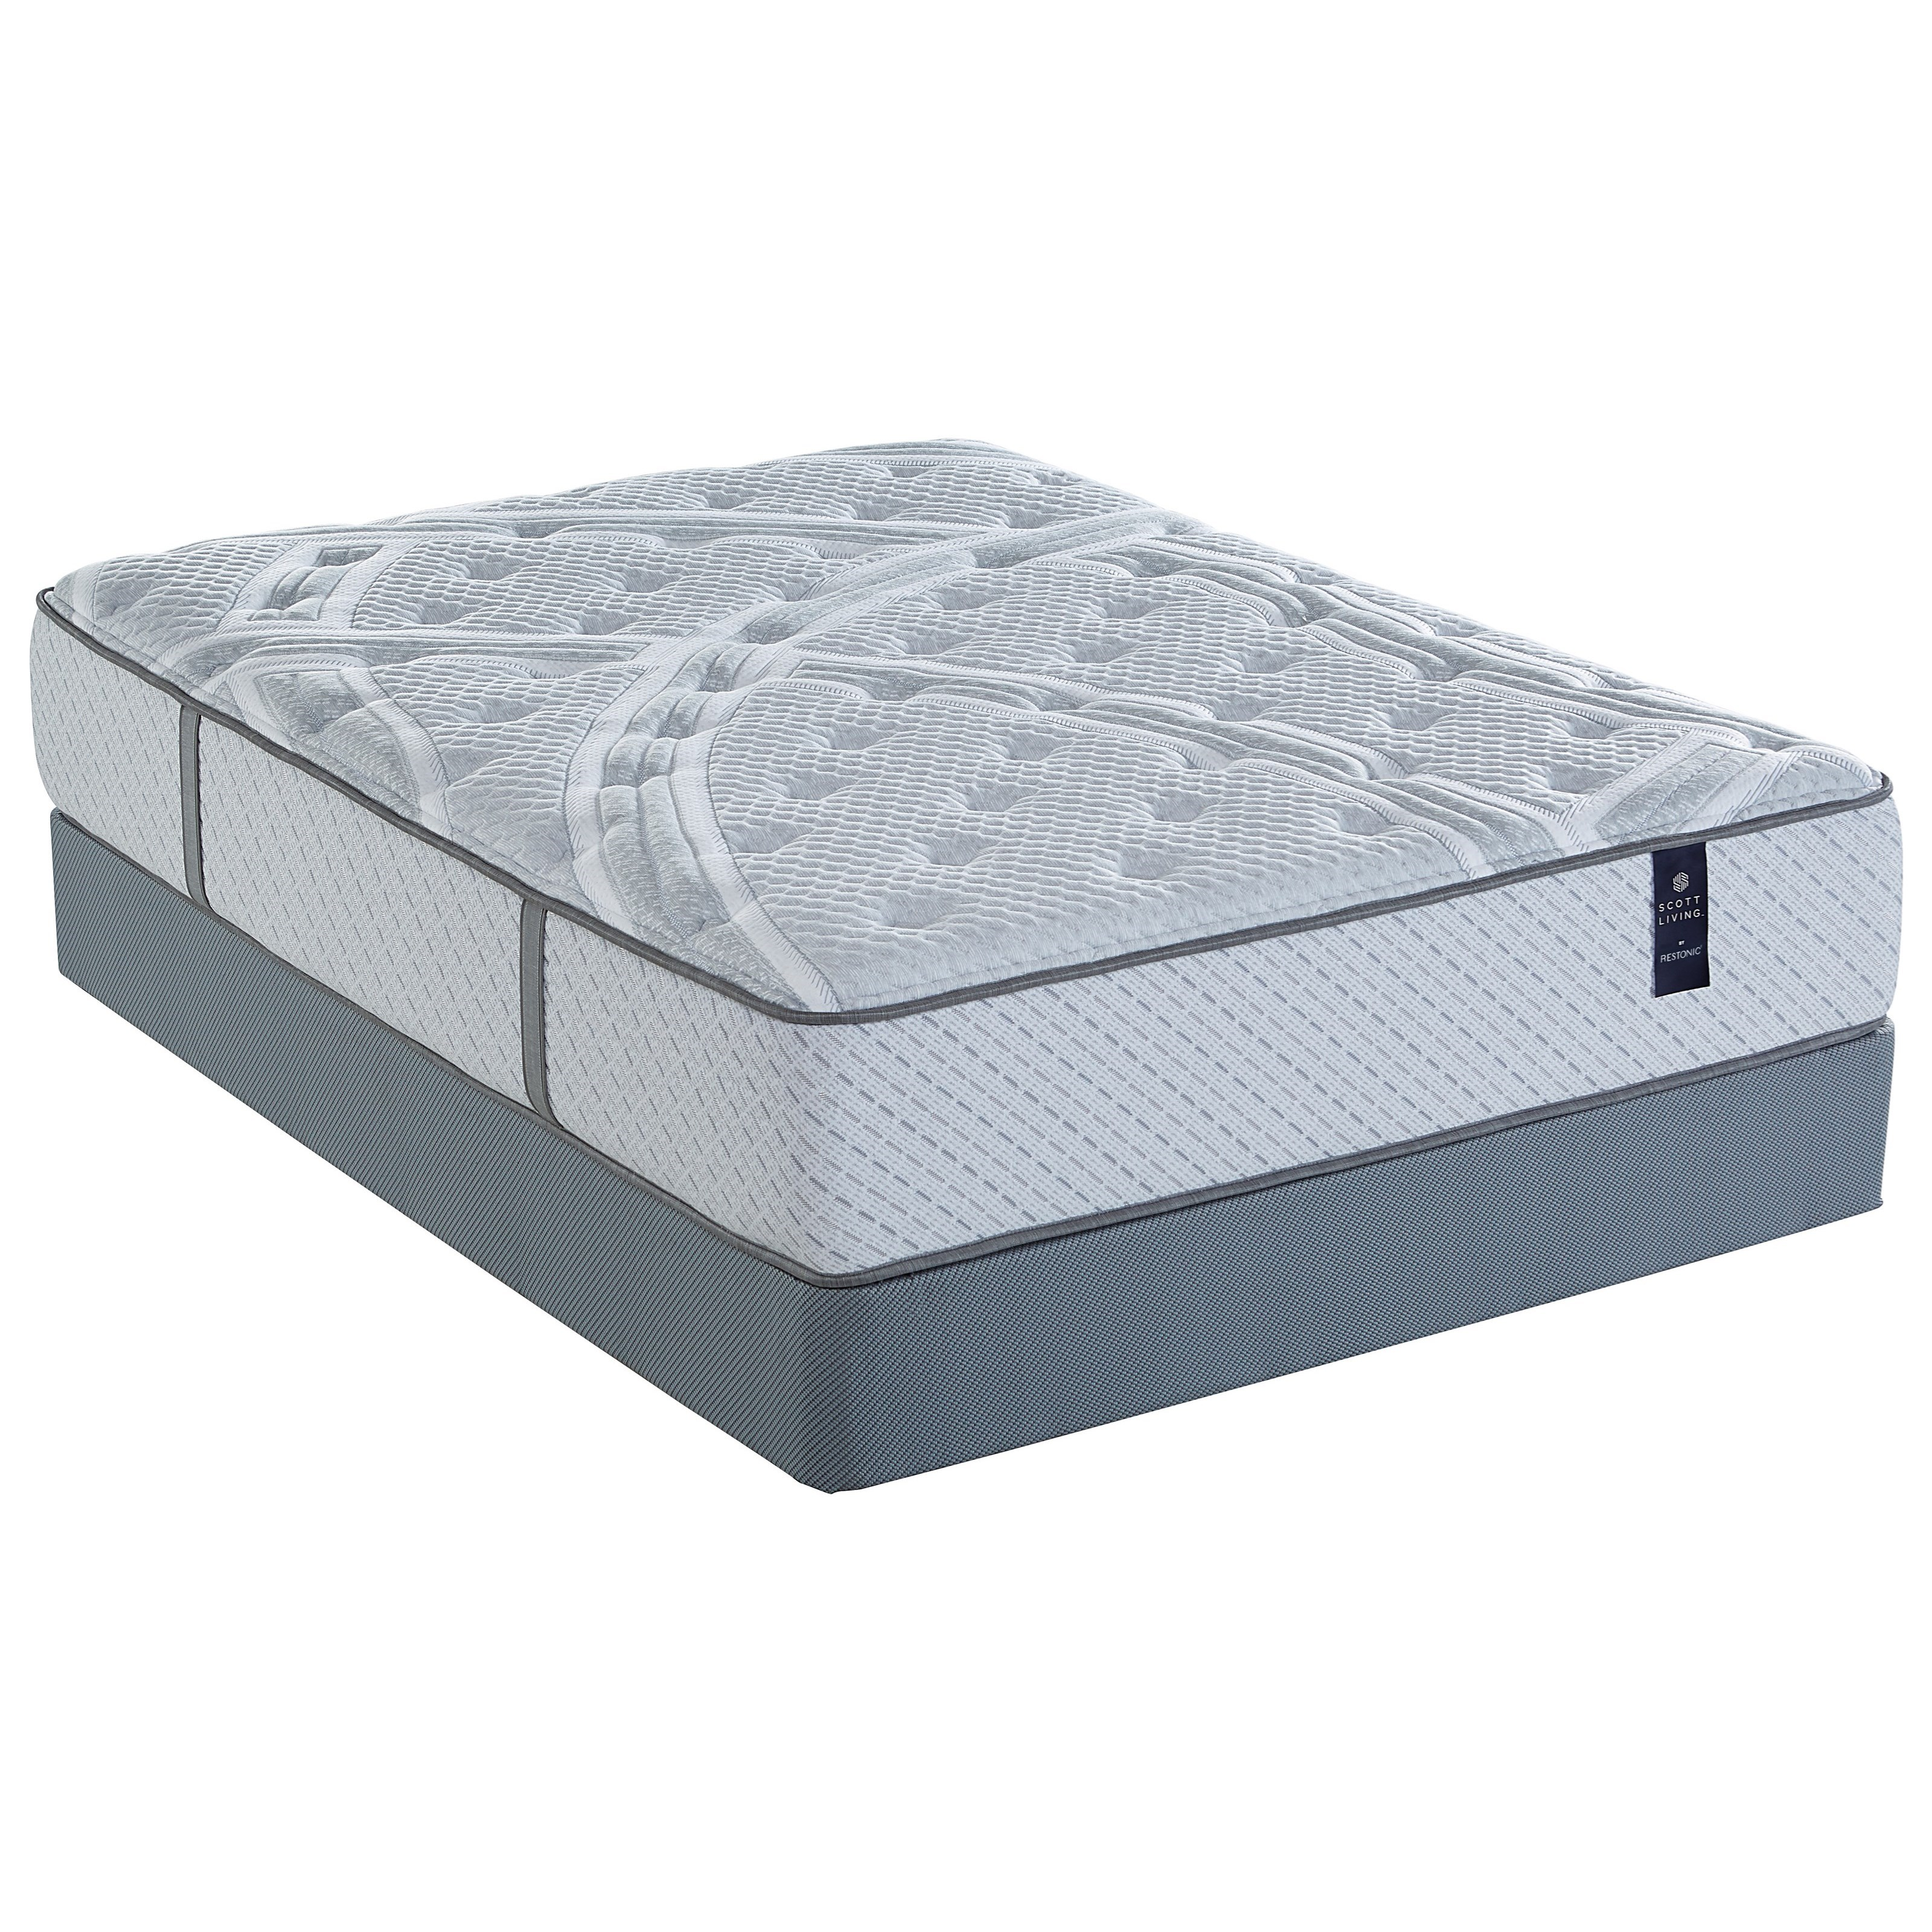 Queen Plush Pocketed Coil Mattress Set